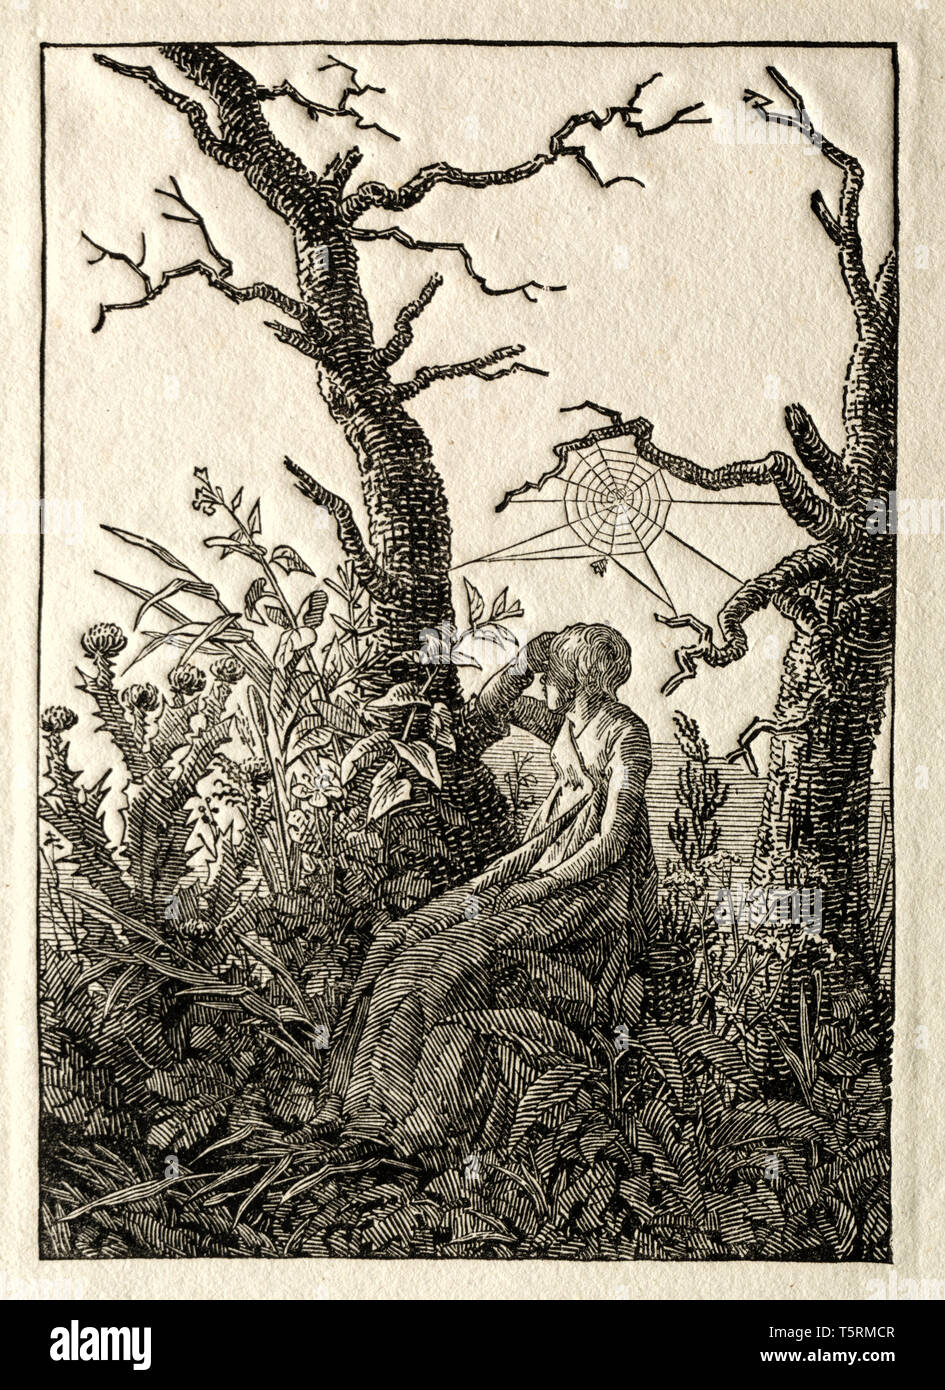 Caspar David Friedrich, The Woman with the Spider Web between Bare Trees, woodcut print, 1803 - Stock Image